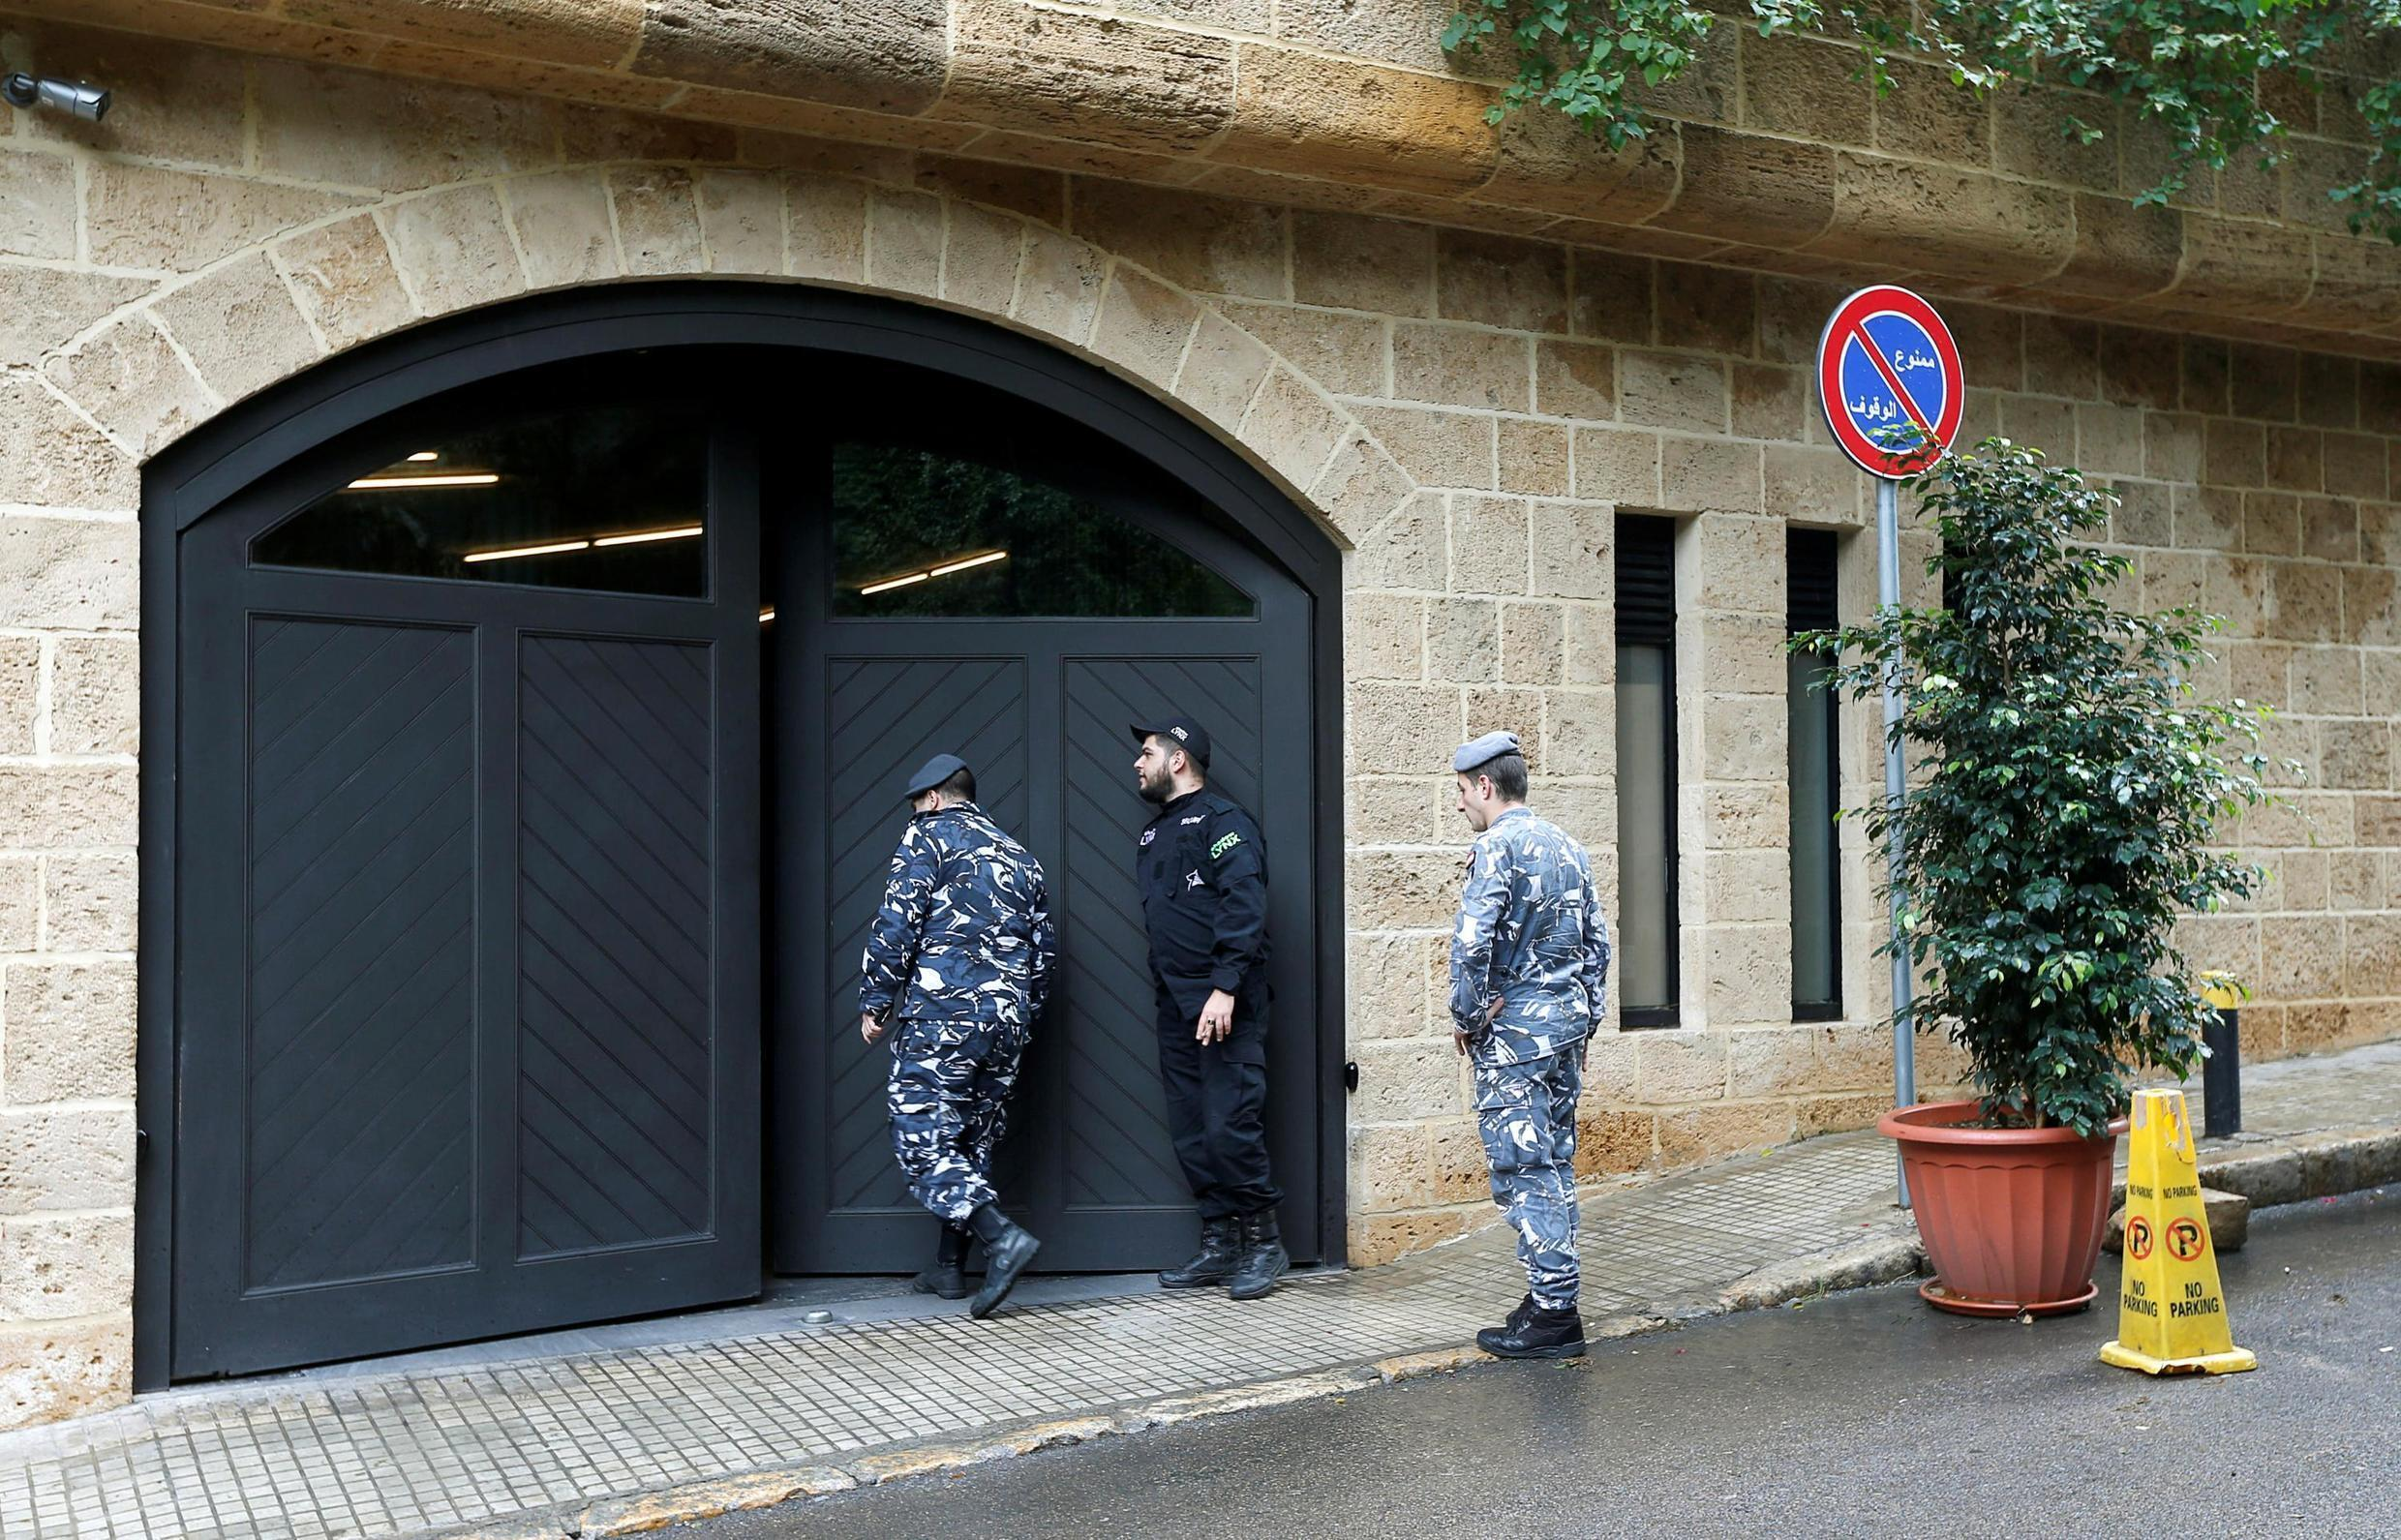 Lebanese police officers are seen at the entrance to the garage of what is believed to be former Nissan boss Carlos Ghosn's house in Beirut, Lebanon December 31, 2019.